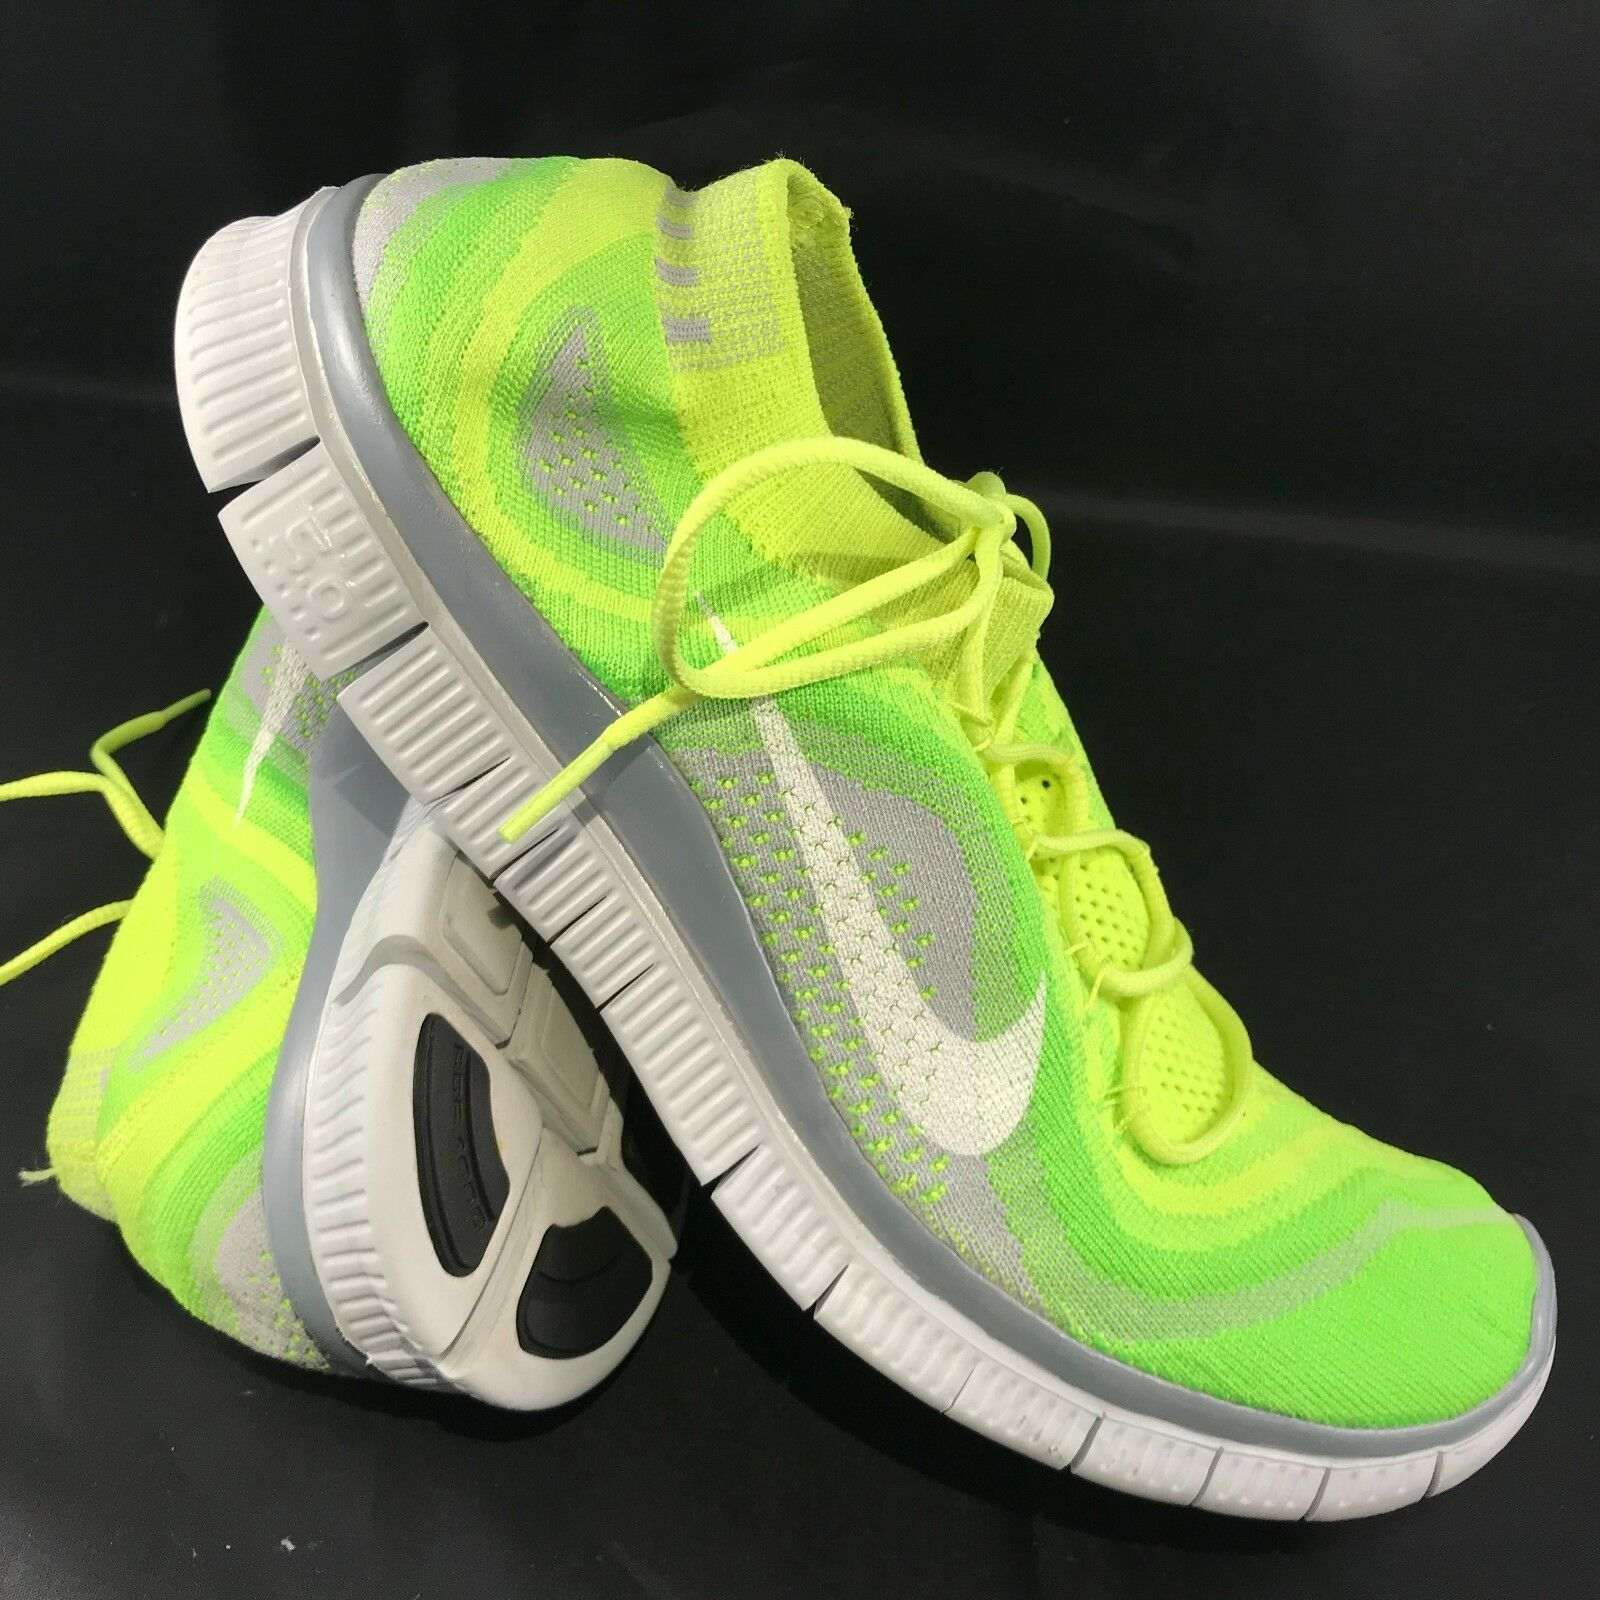 NIKE FLYKNIT FREE 5.0 Mens Size US 13 47.5 Volt/White-Electric Green-Wolf Grey